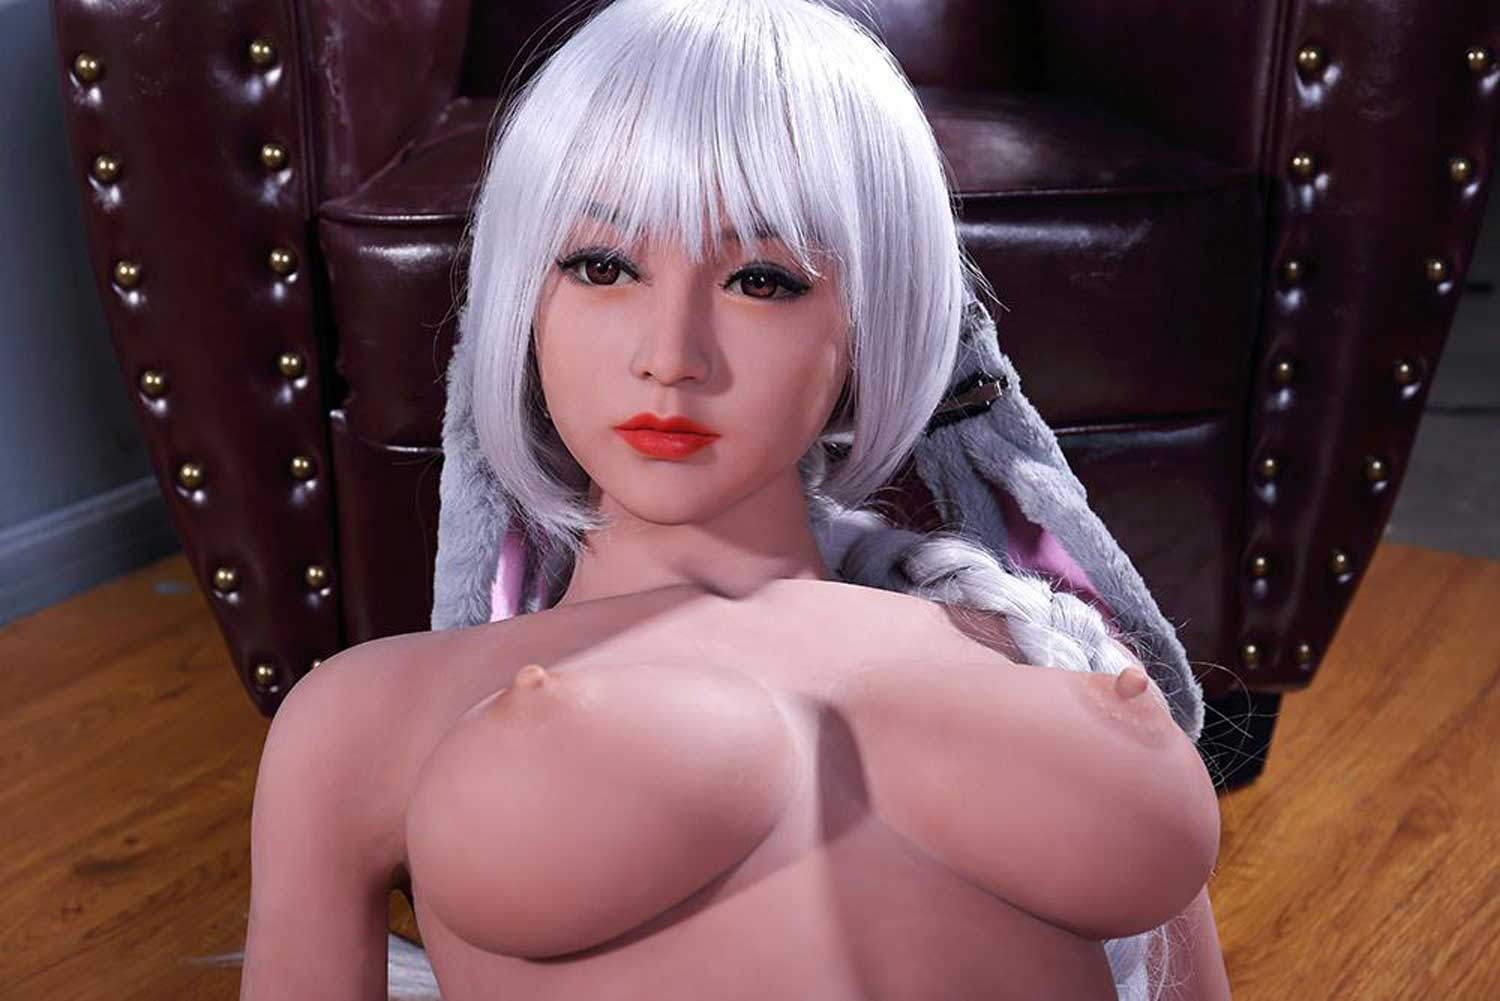 Sex doll with red lips